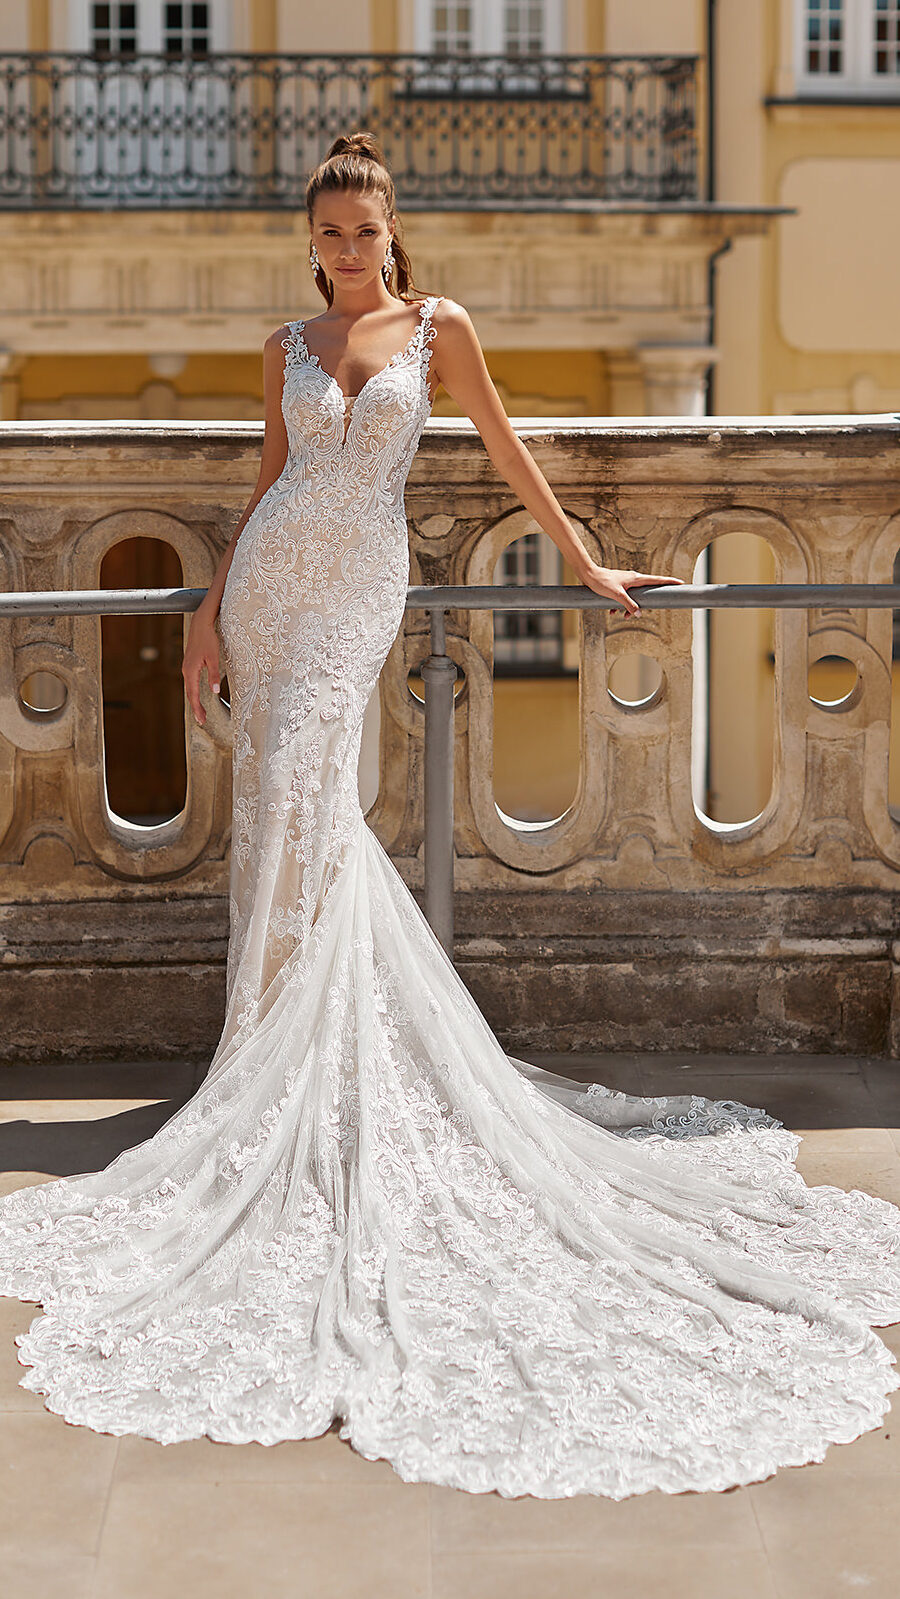 Designer Wedding Dresses by Moonlight Couture 2022 Bridal Collection - H1491